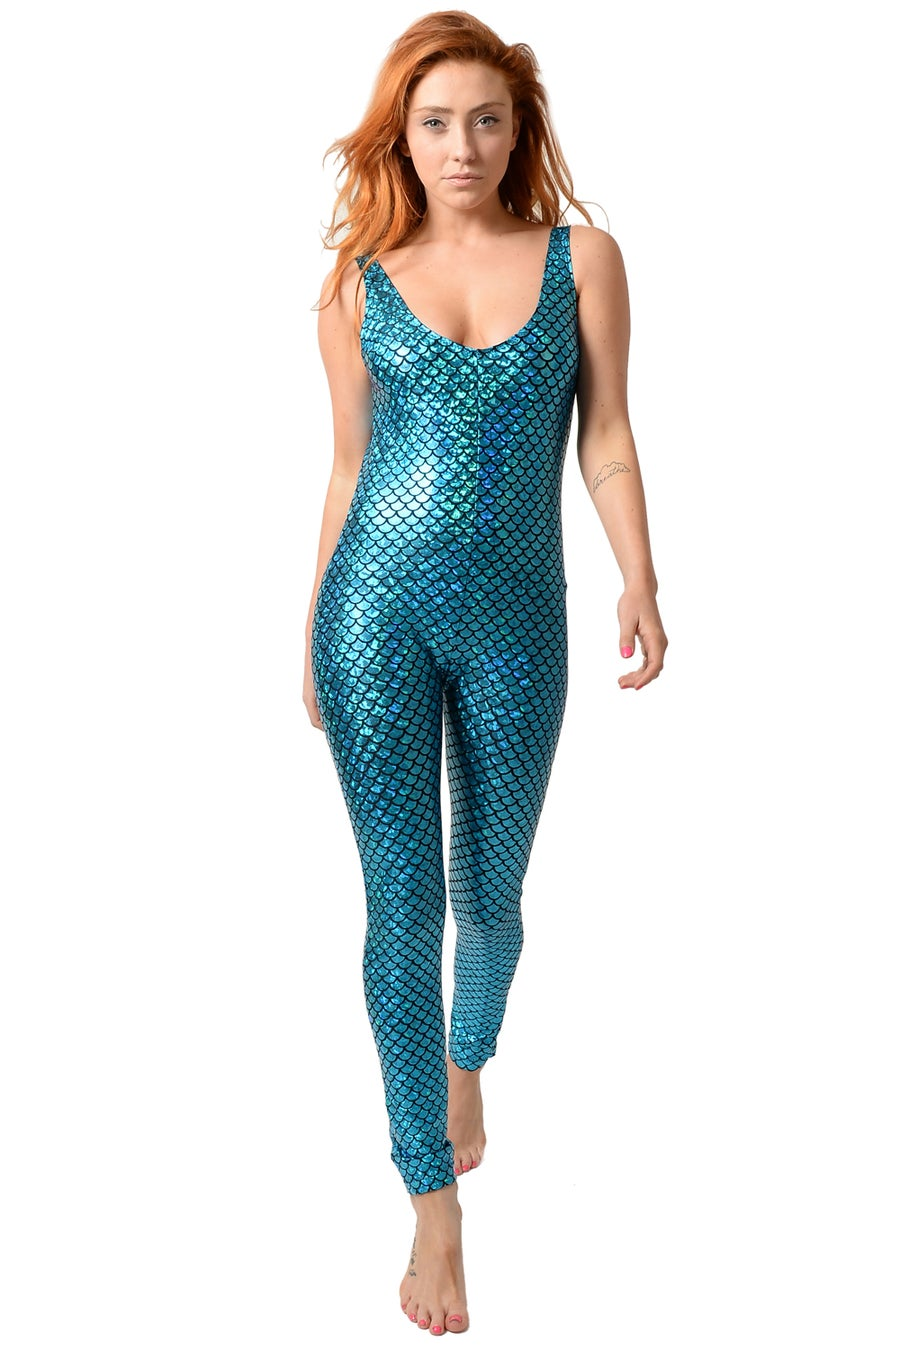 Image of Turquoise Mermaid Catsuit